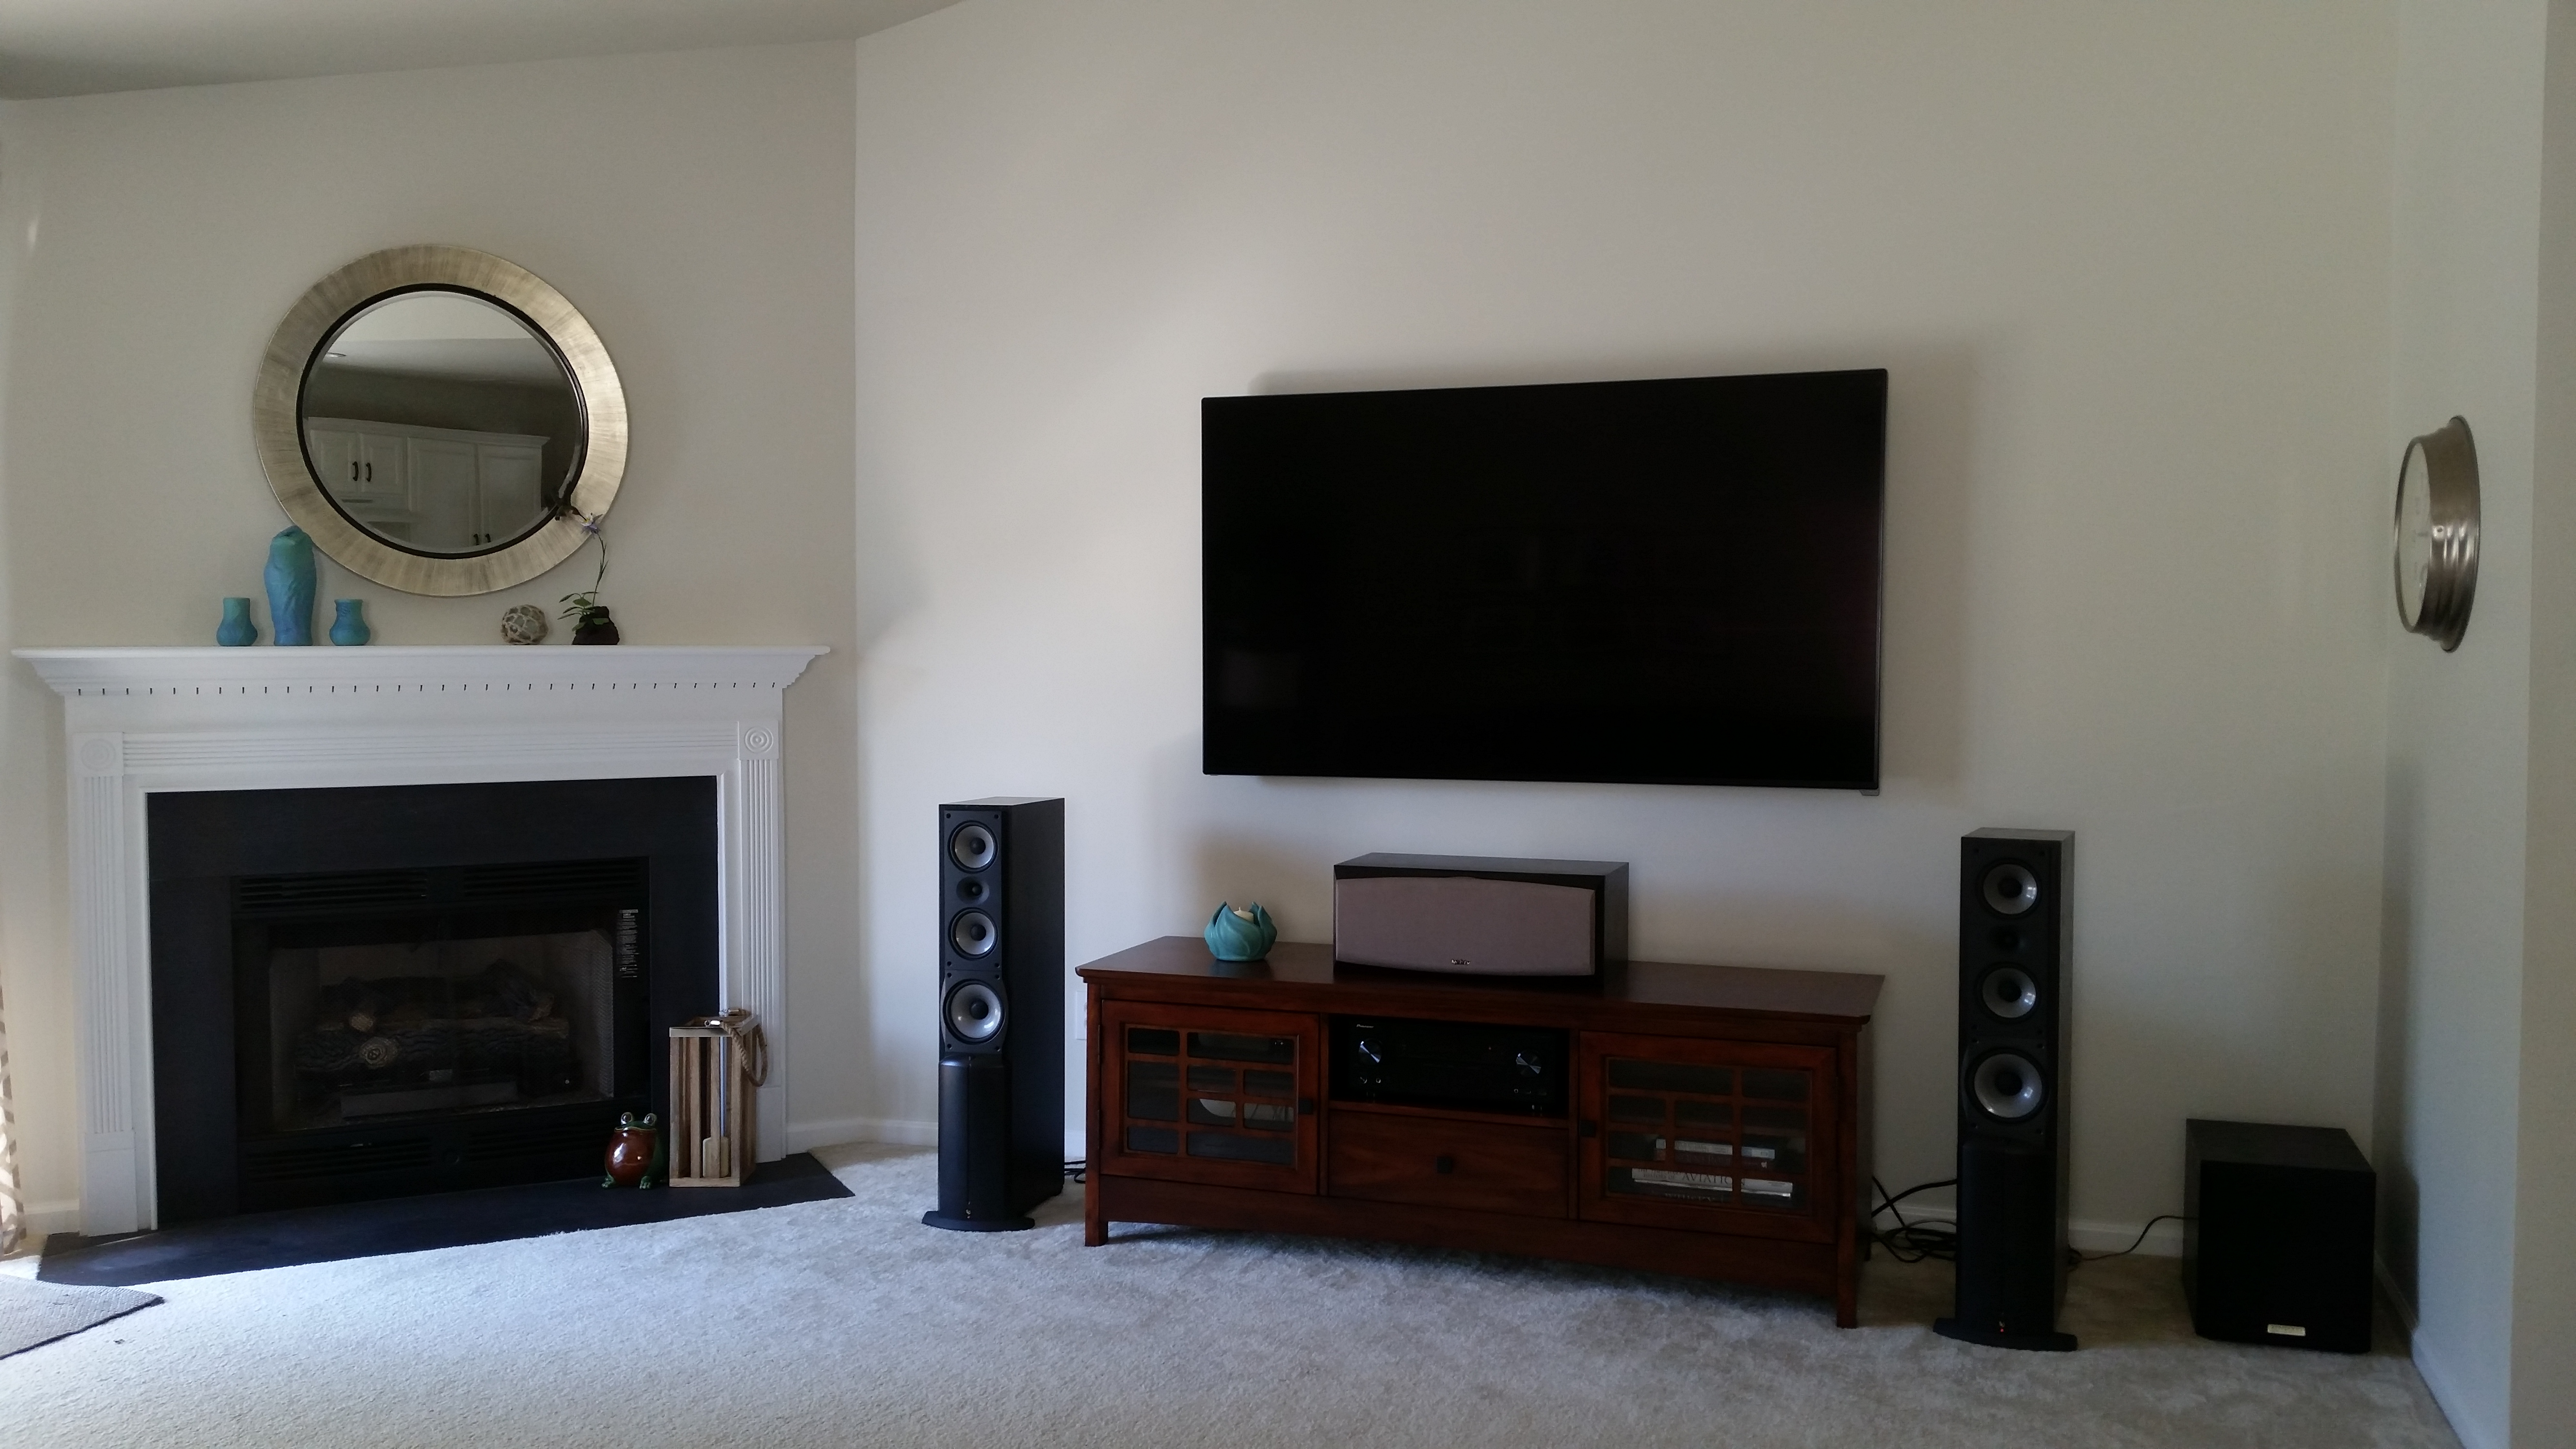 new media console in room